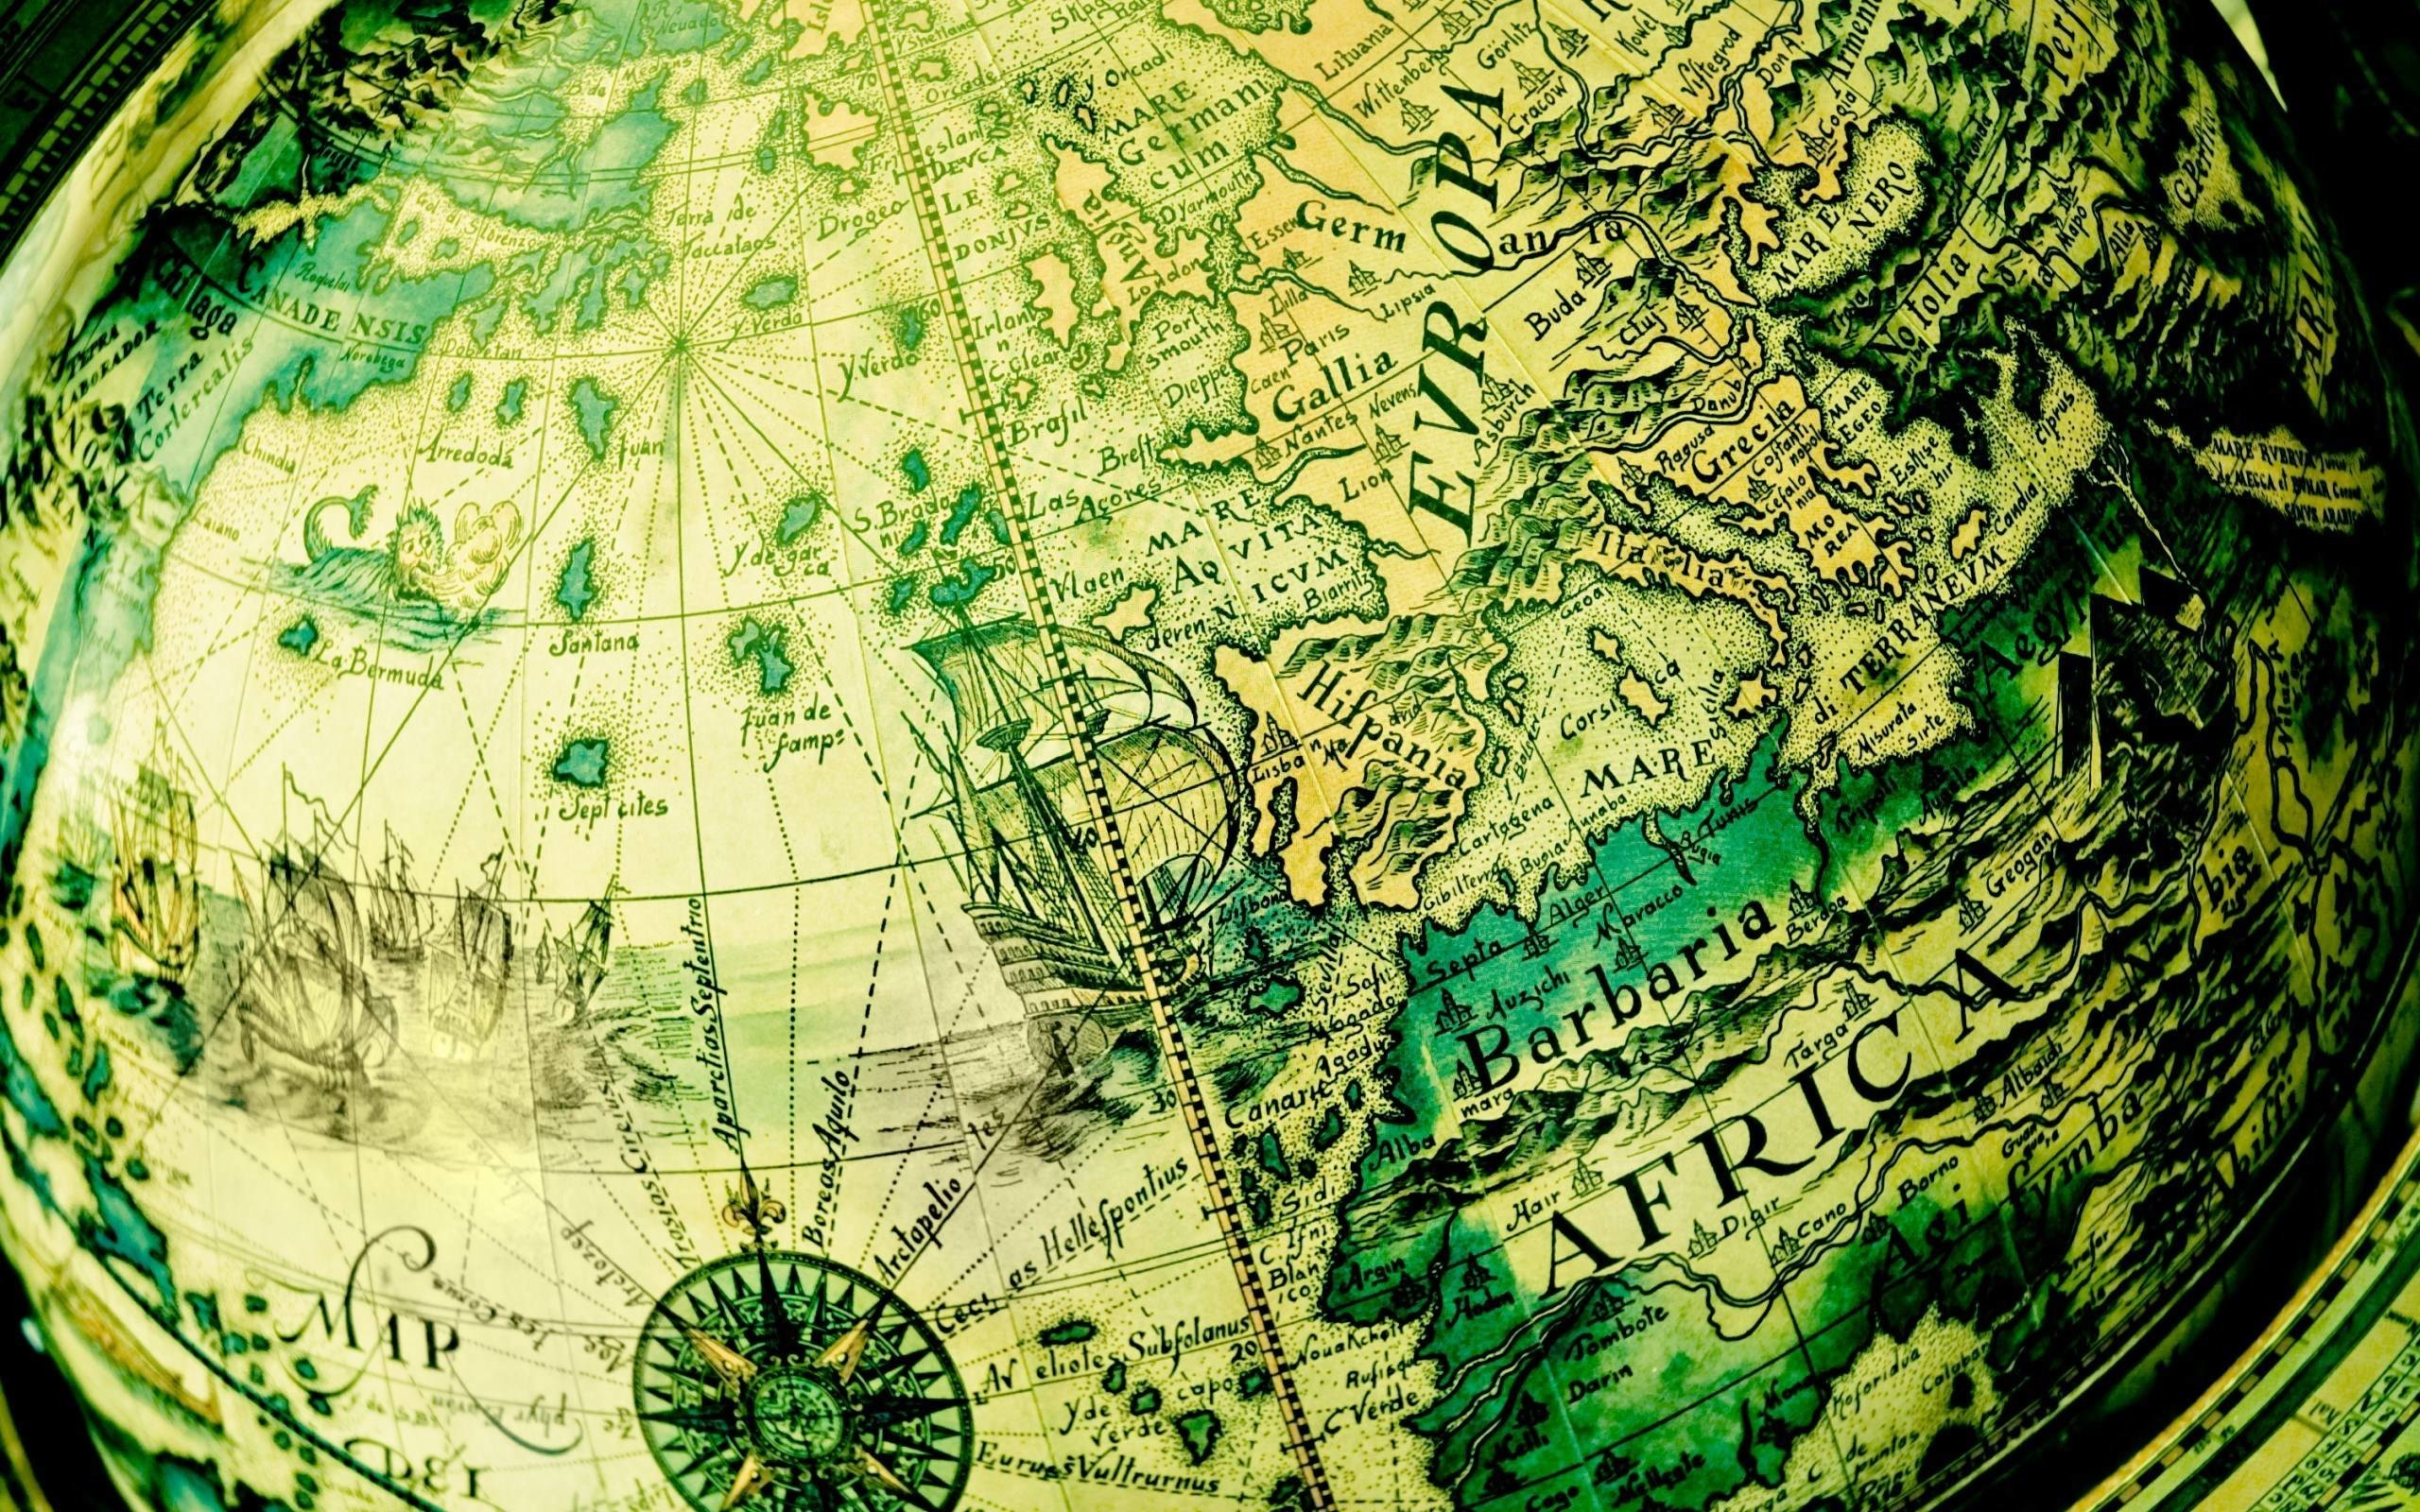 Res: 2560x1600, Barbaria Africa World Globe Antique Map HD Wallpaper - ZoomWalls